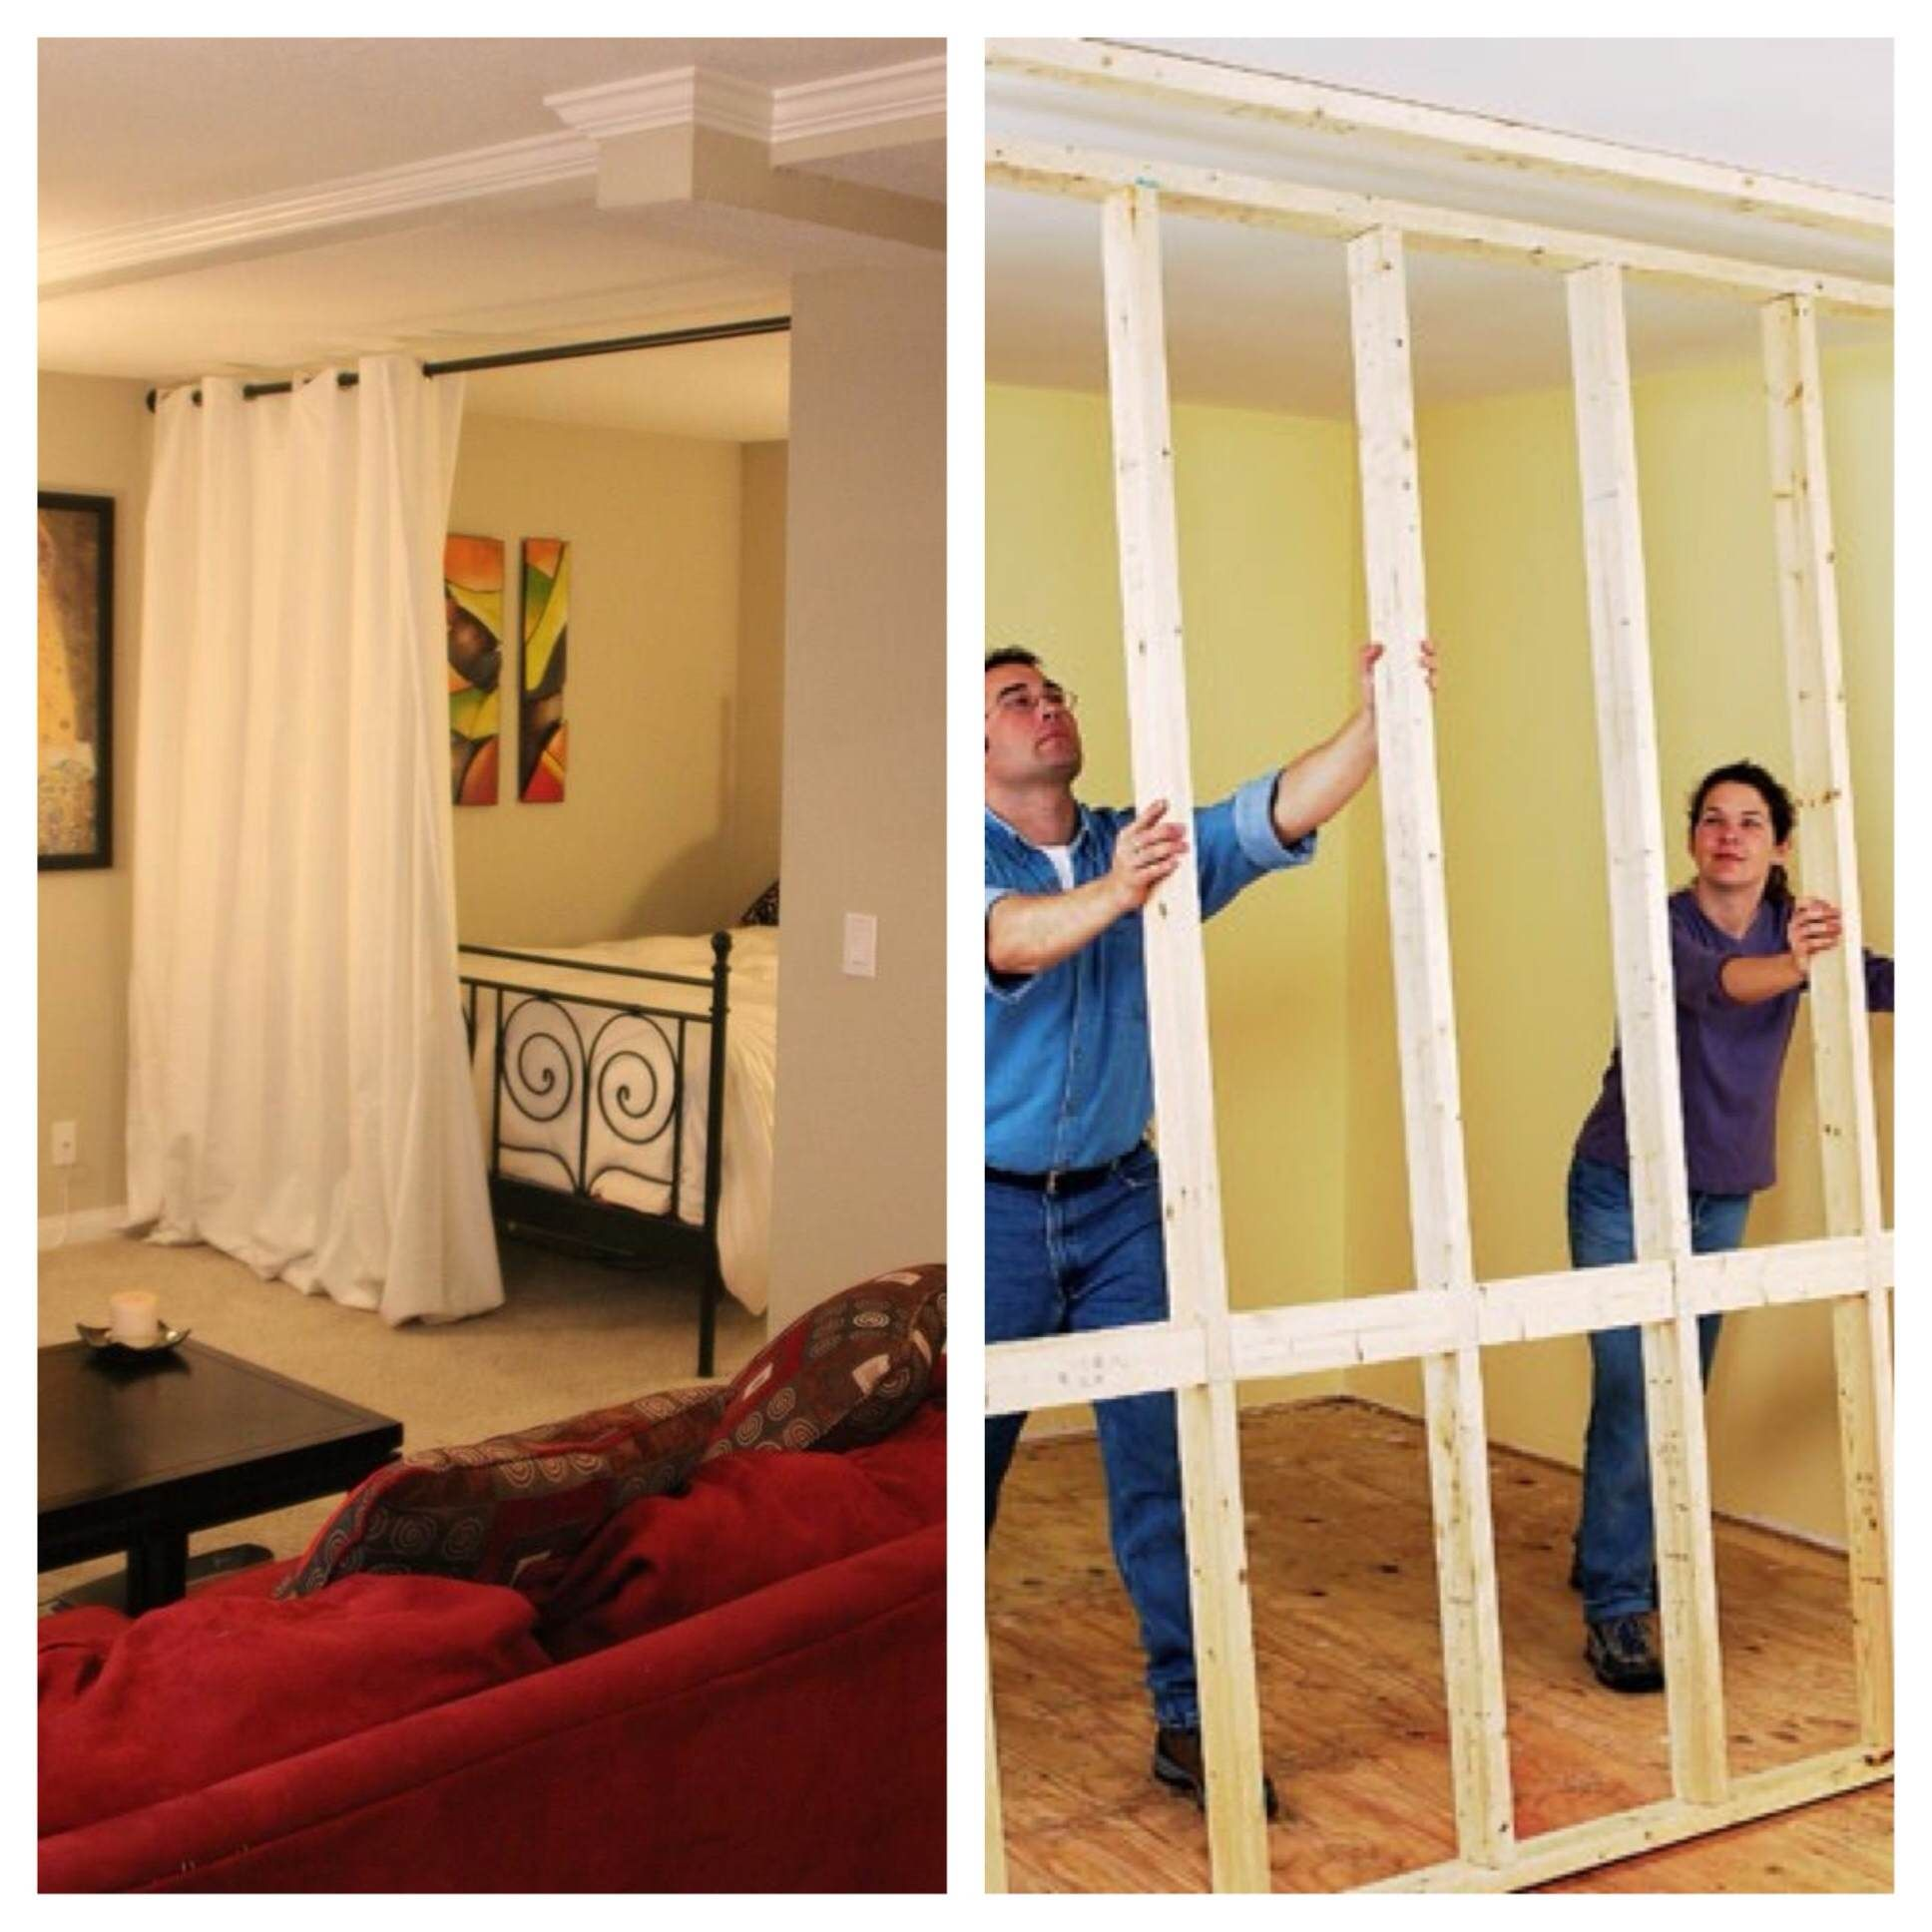 Hanging Room Divider Kits | Roommate, Bedrooms and Studio